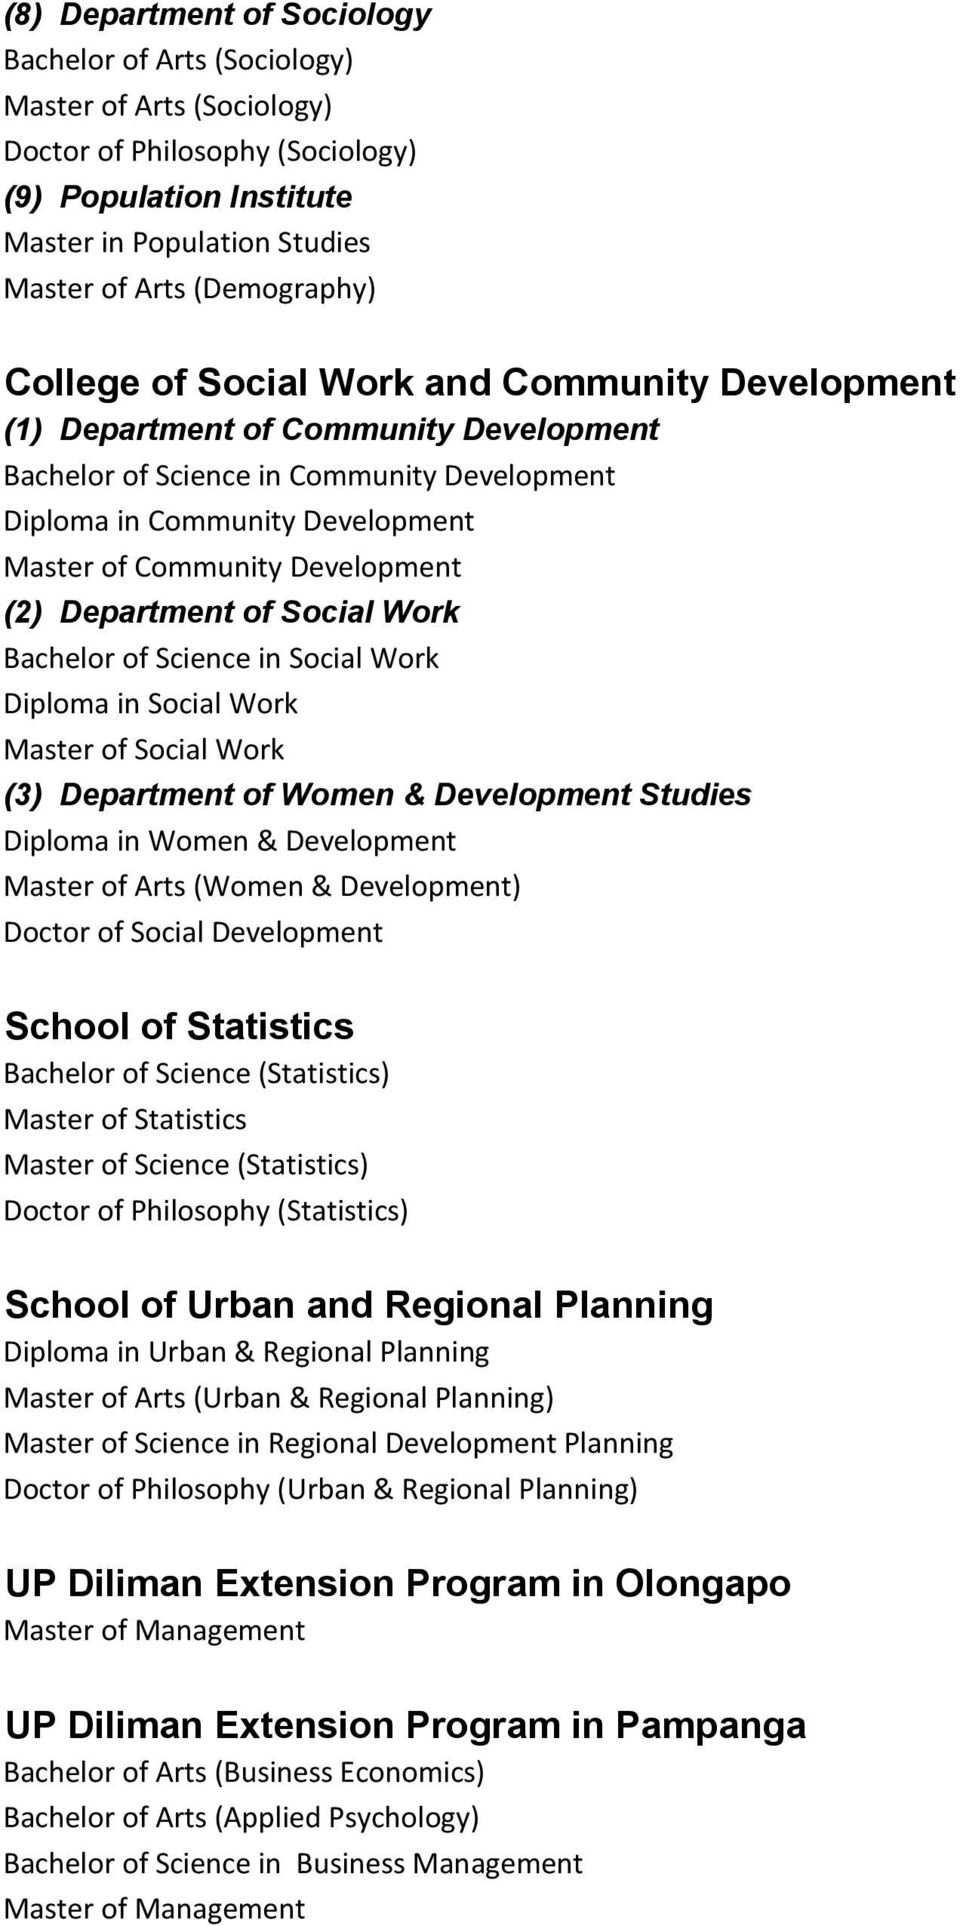 (2) Department of Social Work Bachelor of Science in Social Work Diploma in Social Work Master of Social Work (3) Department of Women & Development Studies Diploma in Women & Development Master of